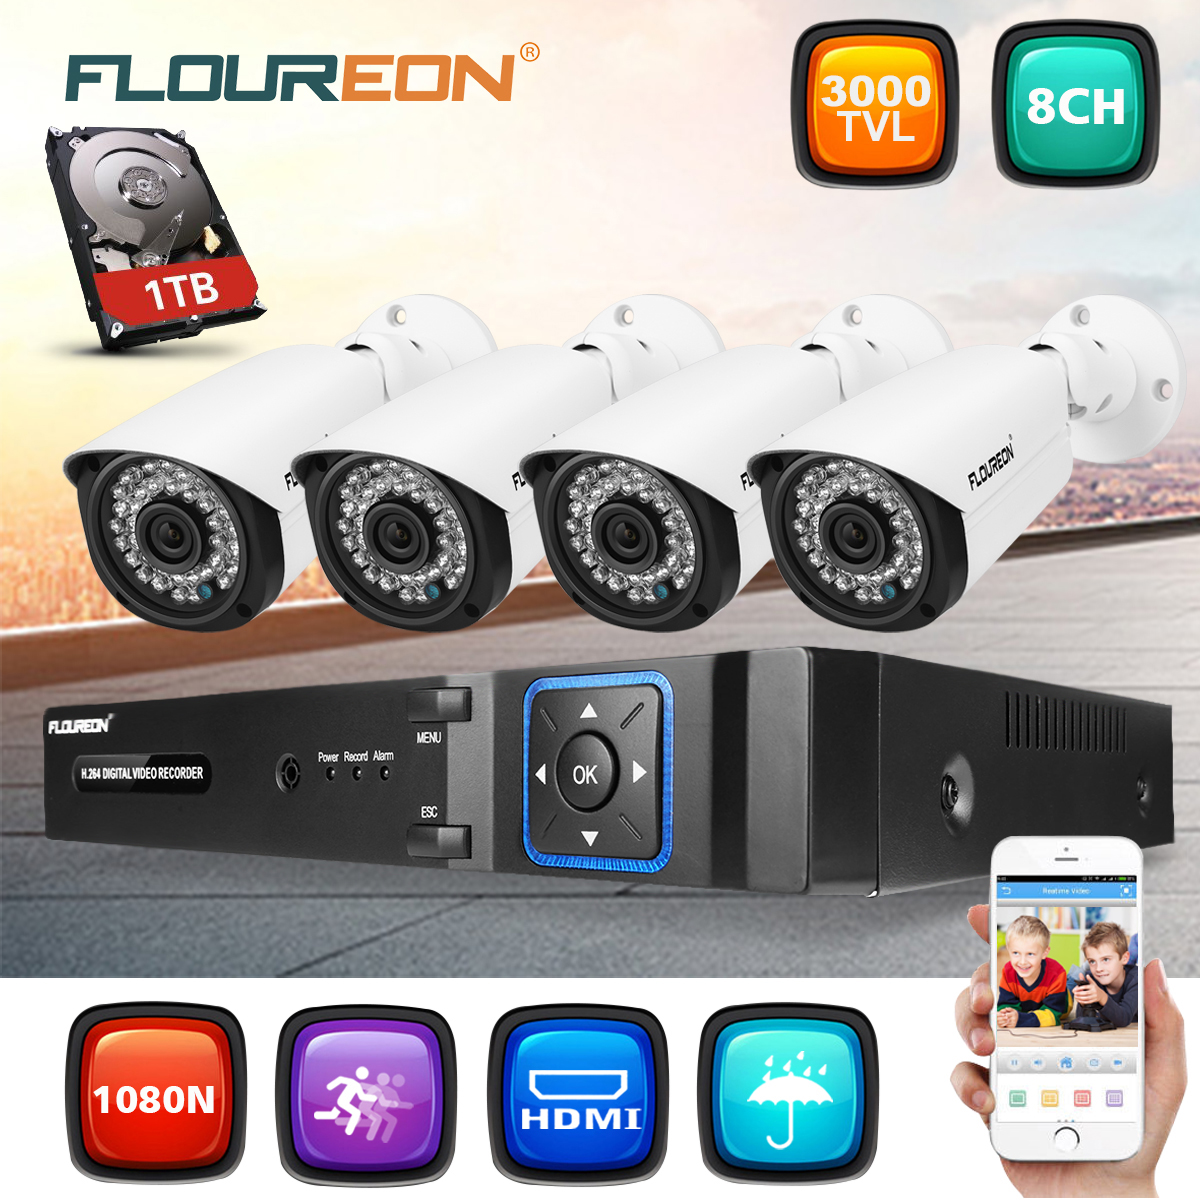 FLOUREON Hybrid AHD CCTV Security Camera 2.0MP 1080P AHD DVR 1080H 3000TVL Bullet Day Night Vision 36 IR LEDs Outdoor/Indoor Wide Angle 3.6mm Lens for CCTV Camera System (With 1 TB HDD)